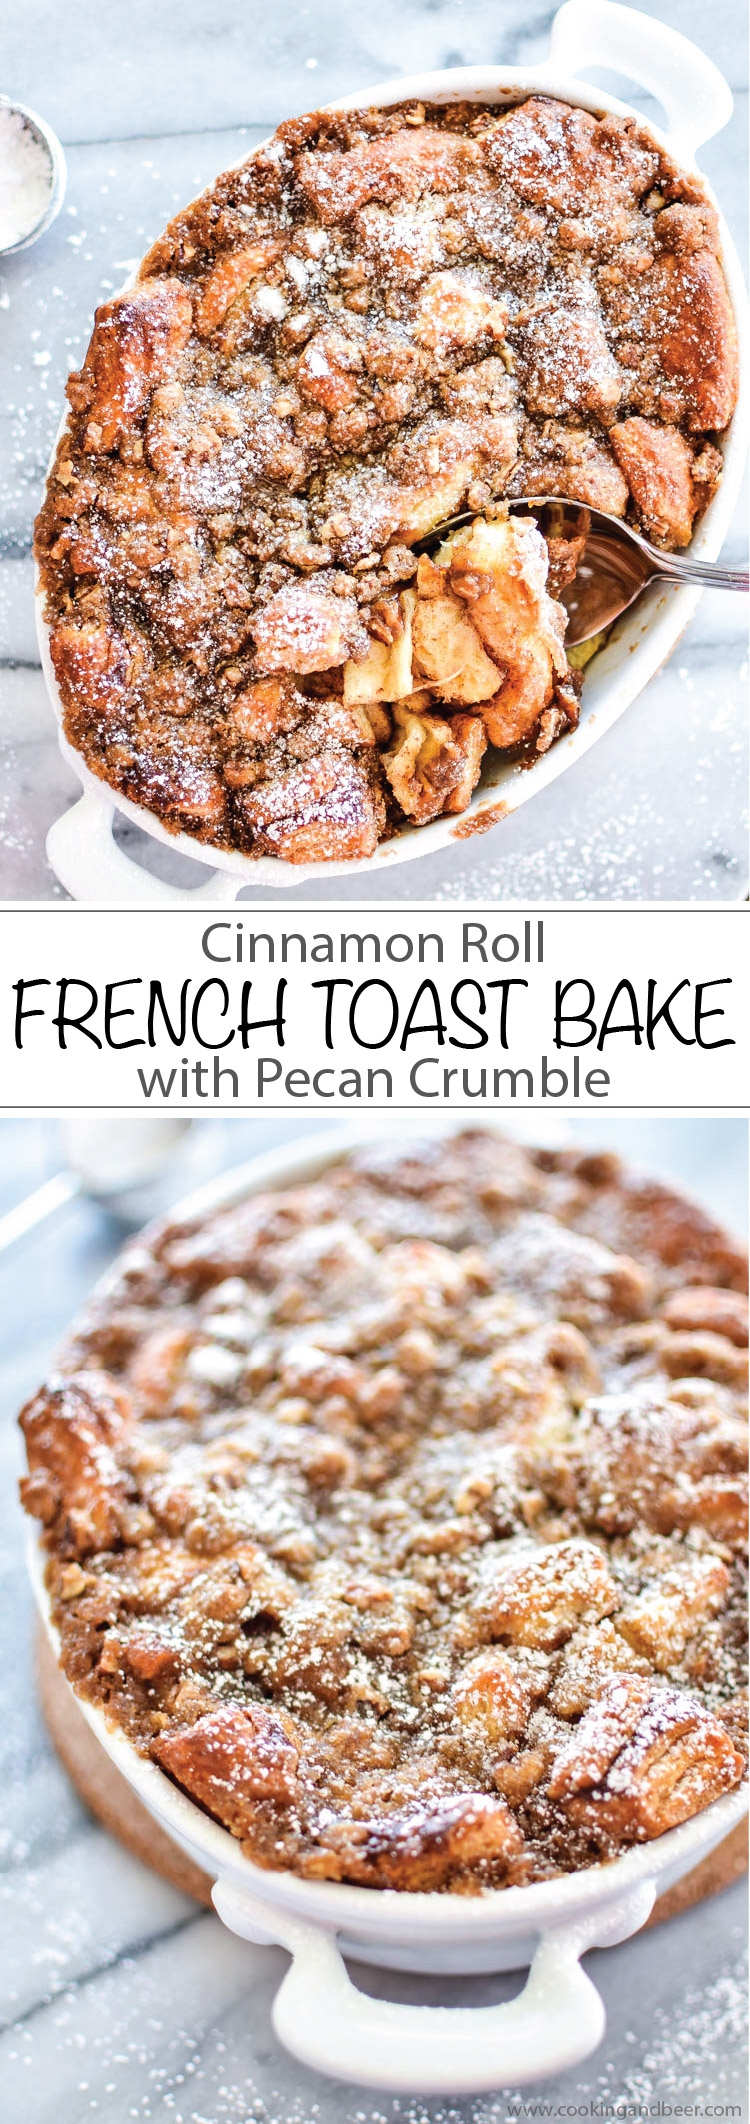 Cinnamon Roll French Toast Bake with Pecan Crumble #breakfast #breakfastideas | www.cookingandbeer.com